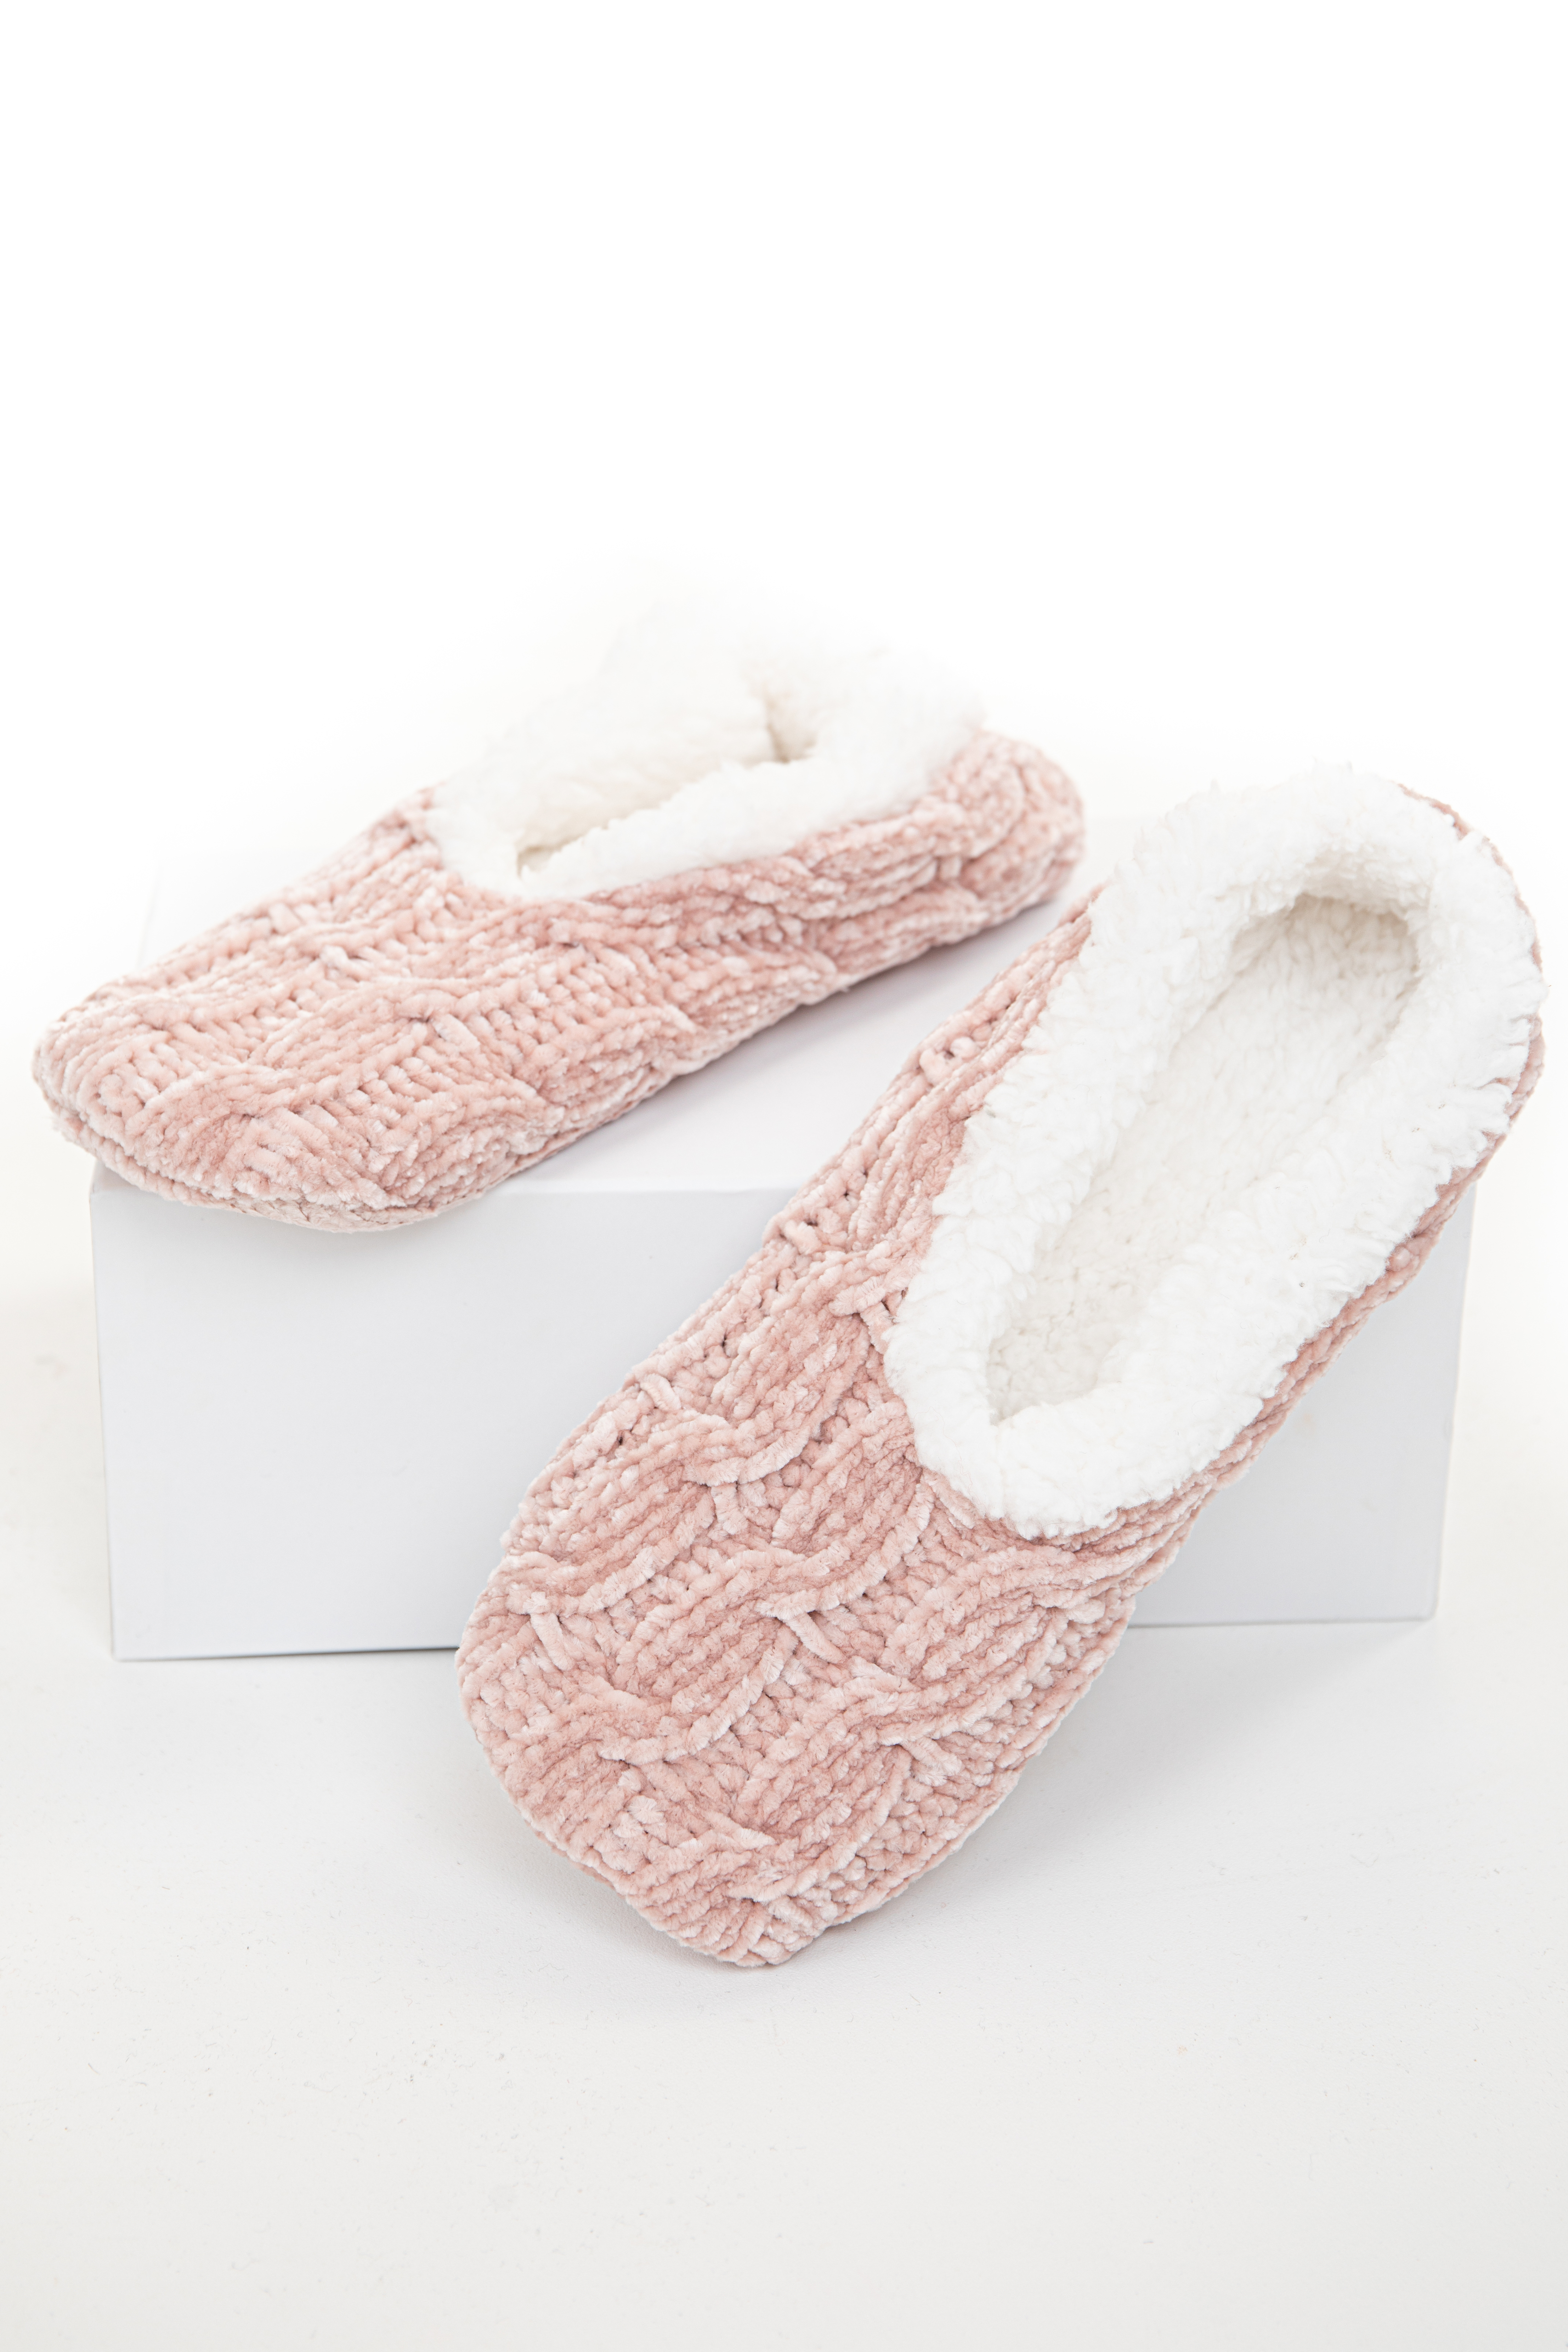 Dusty Blush Chenille Cable Knit Slipper with Faux Fur Lining